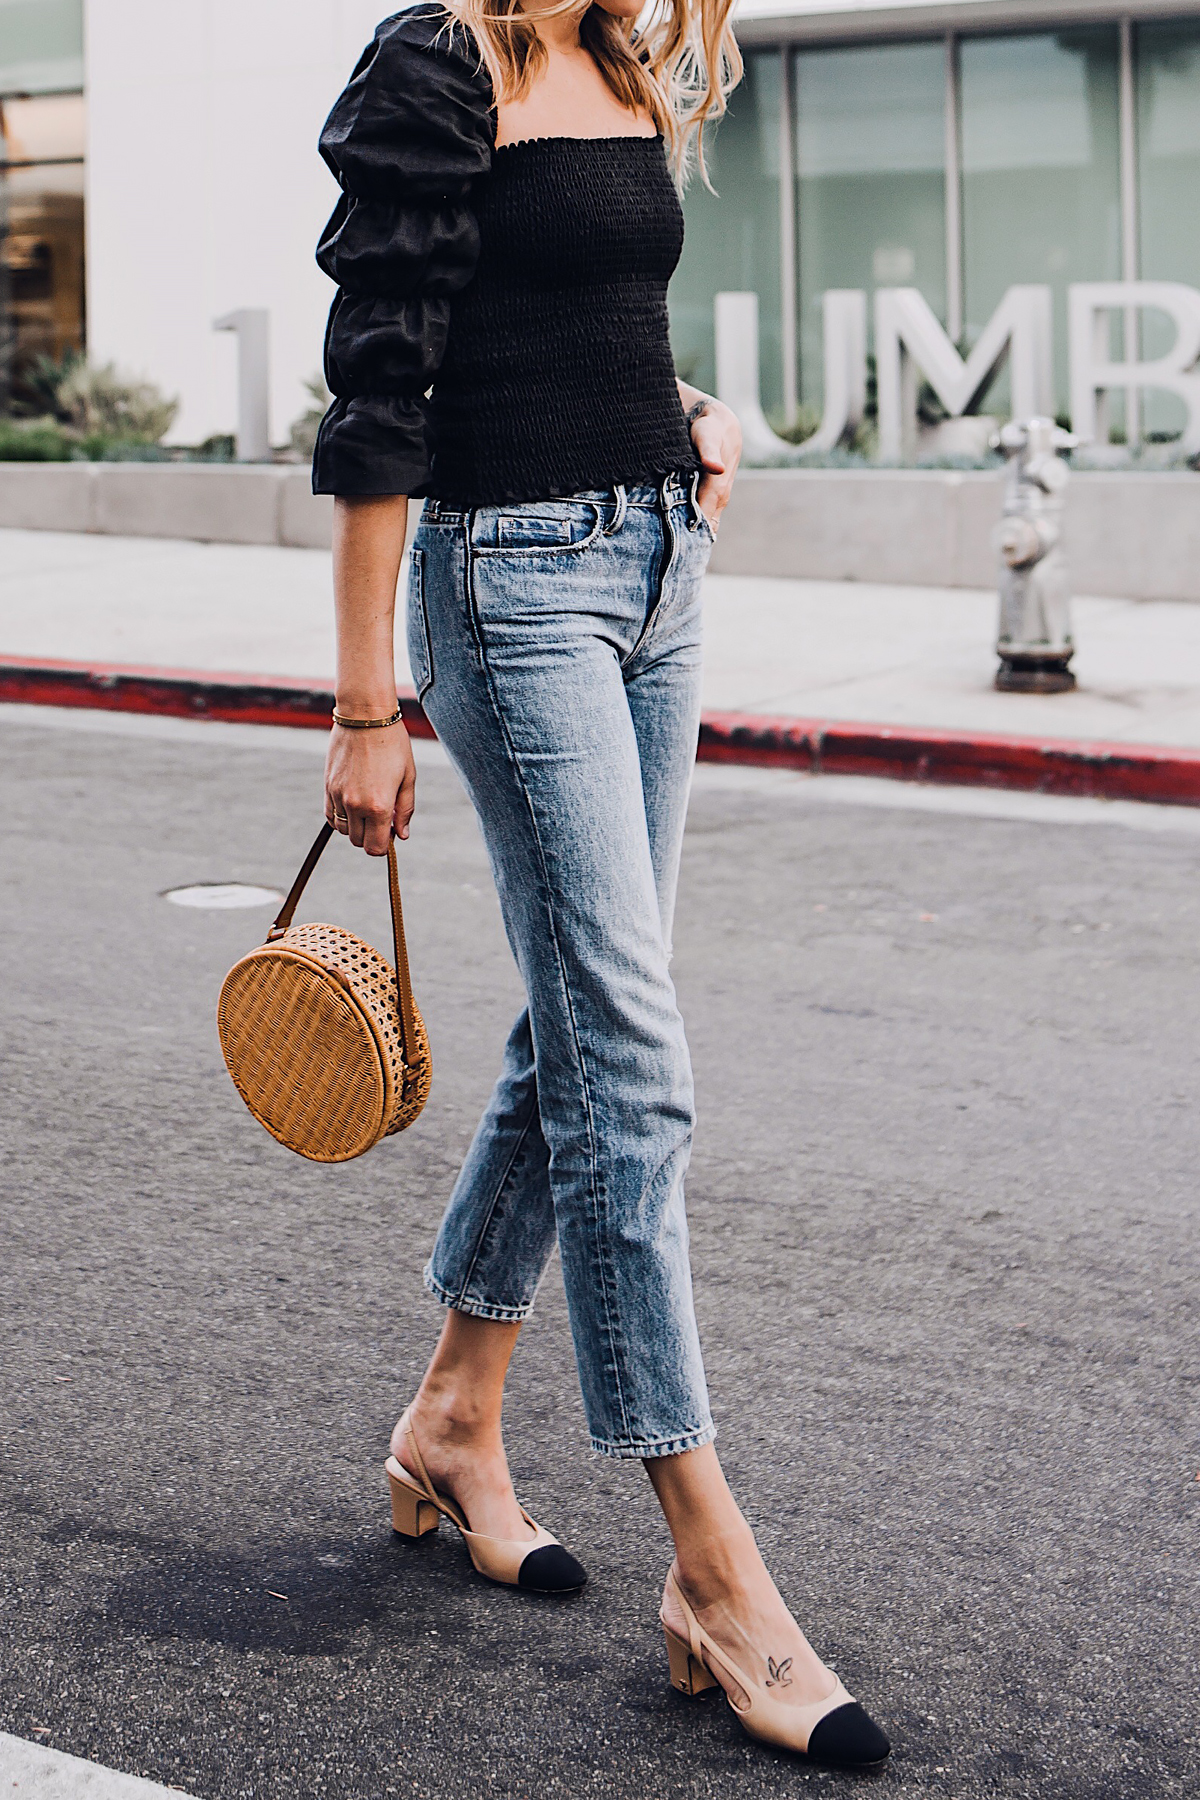 Blonde Woman Wearing Fashion Jackson Reformation Gala Top Black Straight Leg Ripped Jeans Chanel Slingback Shoes Cane Circle Straw Handbag Fashion Jackson San Diego Fashion Blogger Street Style